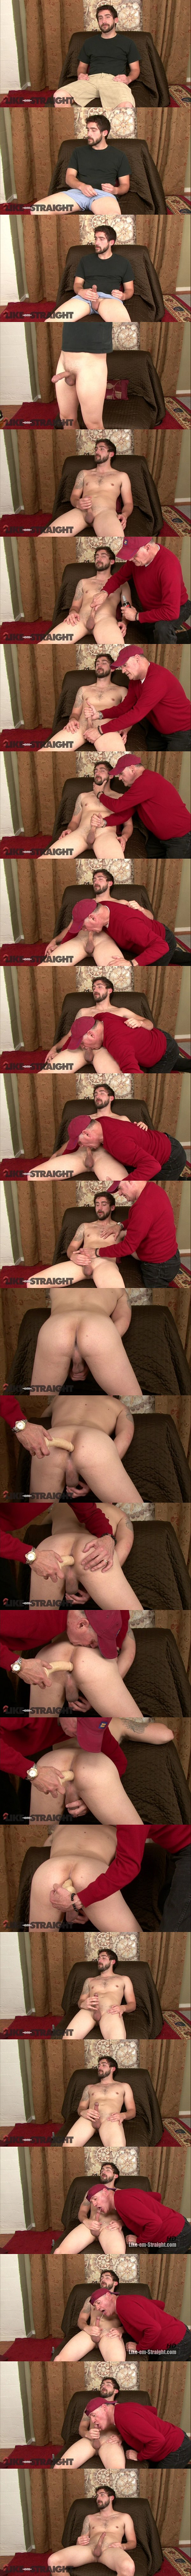 Bearded straight dude, manly blue collar worker Burton gets his tight virgin ass dildo-fucked by Brendon Marley before he nuts in Brendon's mouth in Cream Dreams at Like-em-straight 01